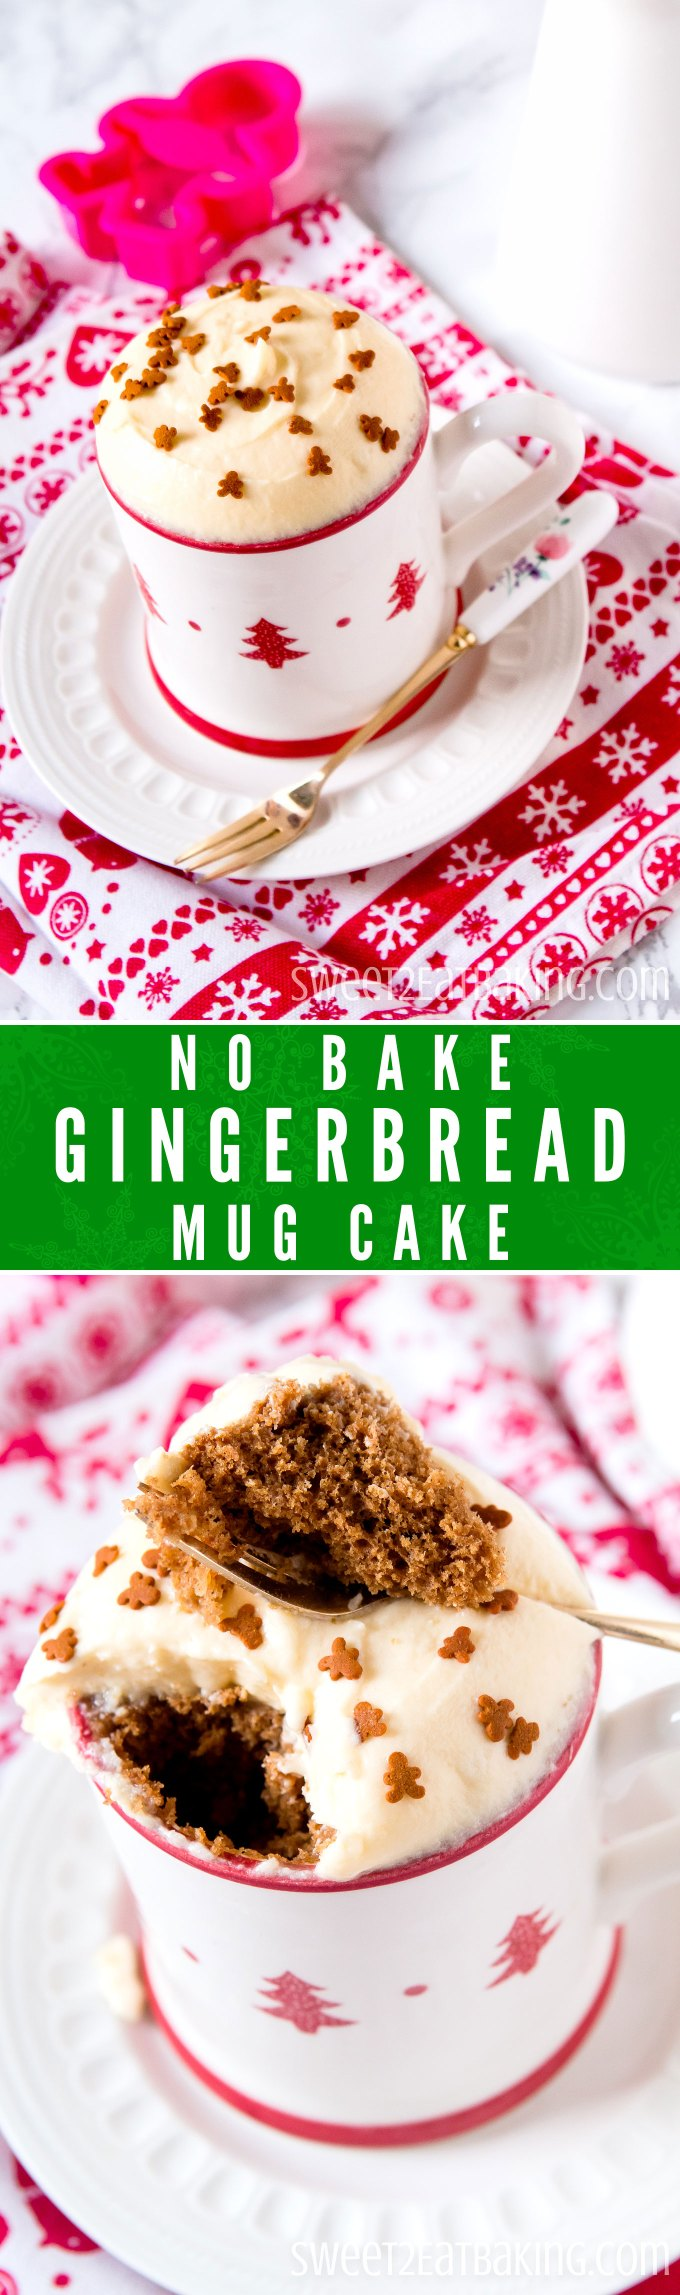 No Bake Gingerbread Mug Cake Recipe by Sweet2EatBaking.com | This Gingerbread Mug Cake is the perfect, quick Christmas dessert when you're craving those festive flavours this holiday season. Quick and simple to make, and perfectly flavoured with traditional festive gingerbread spices